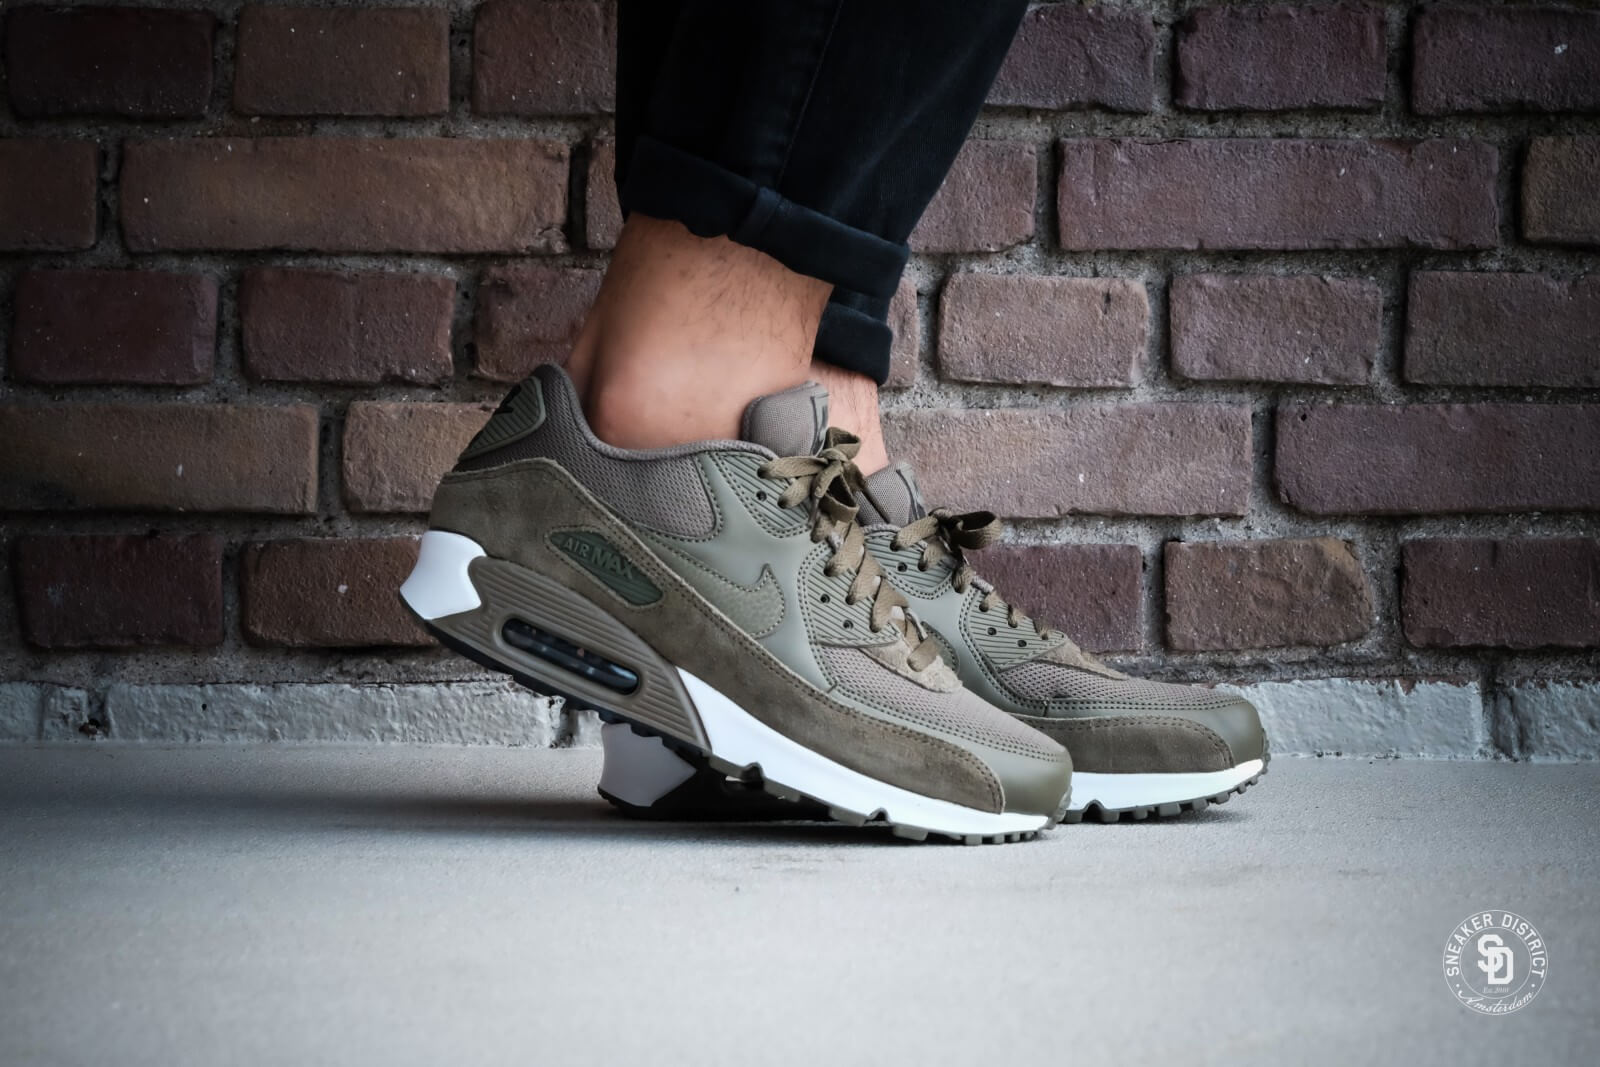 reputable site bdd11 eb7b3 ... 819523-201 Nike Air Max 90 Essential Medium OliveVelvet Brown - 537384-  ...